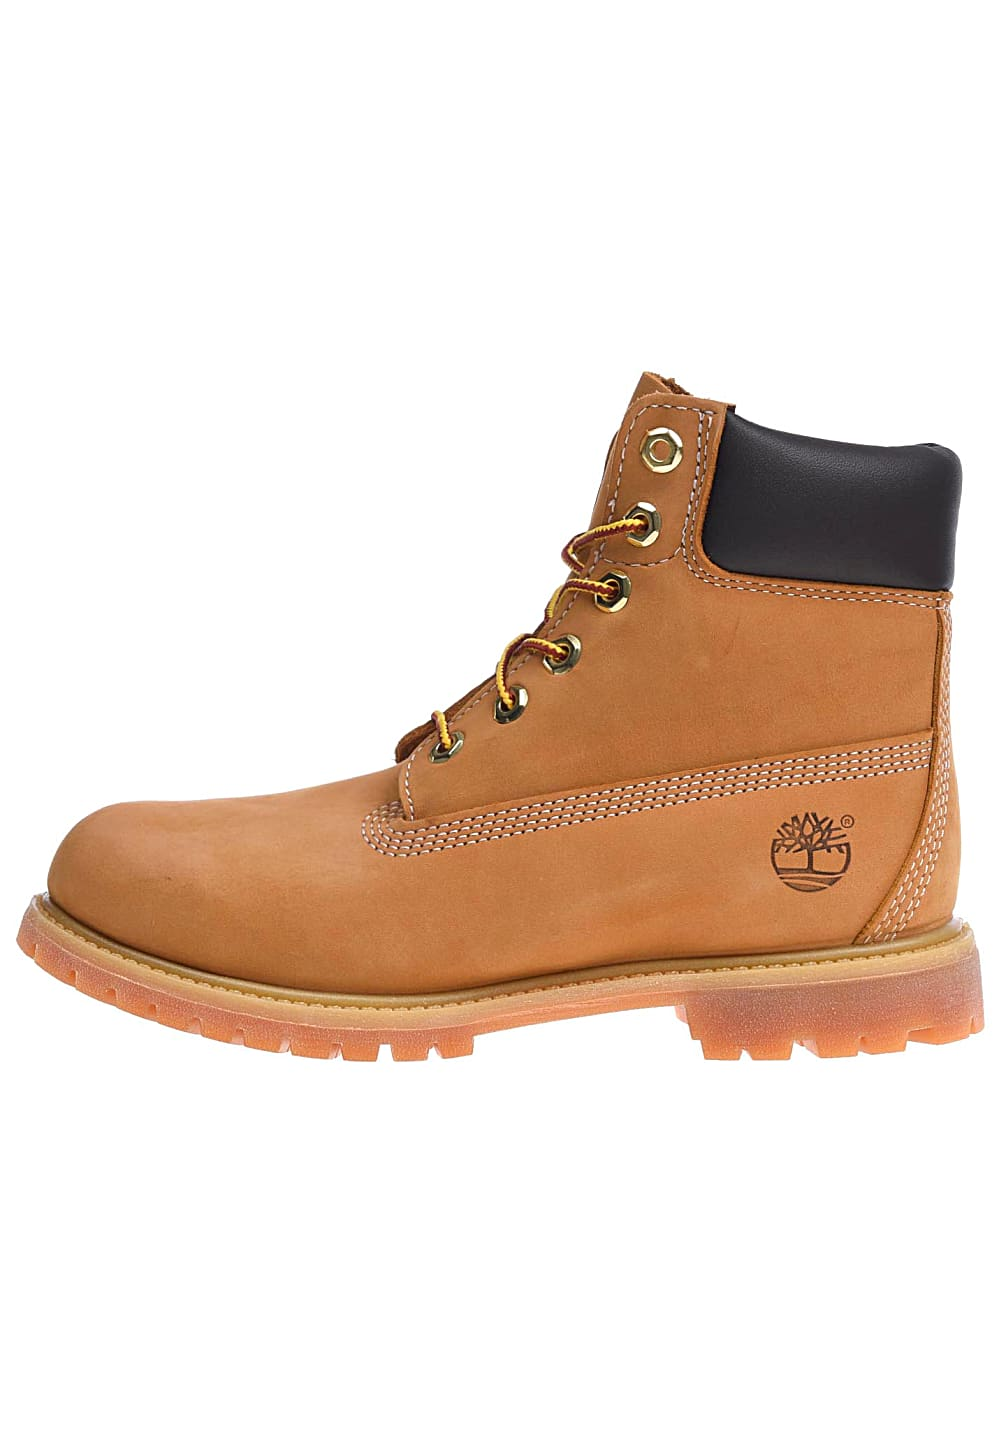 timberland 6 inch premium boots for women beige planet sports. Black Bedroom Furniture Sets. Home Design Ideas